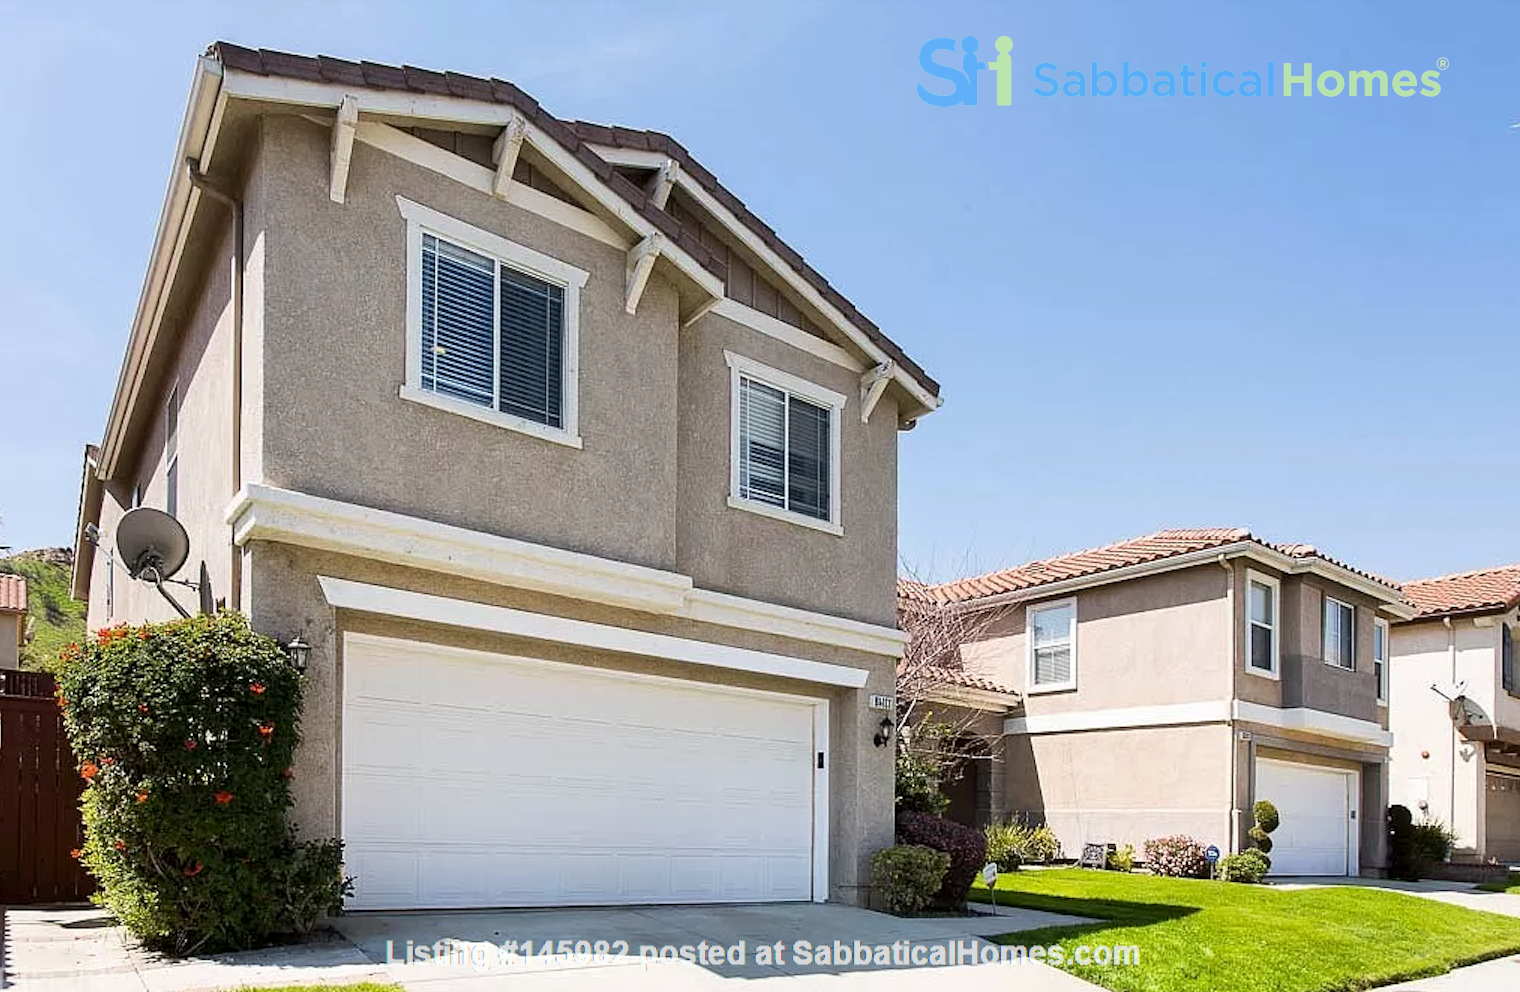 Spacious, Quiet 4 Bedroom Home with Pool & Mountain Views. Pets OK. Home Rental in Los Angeles 2